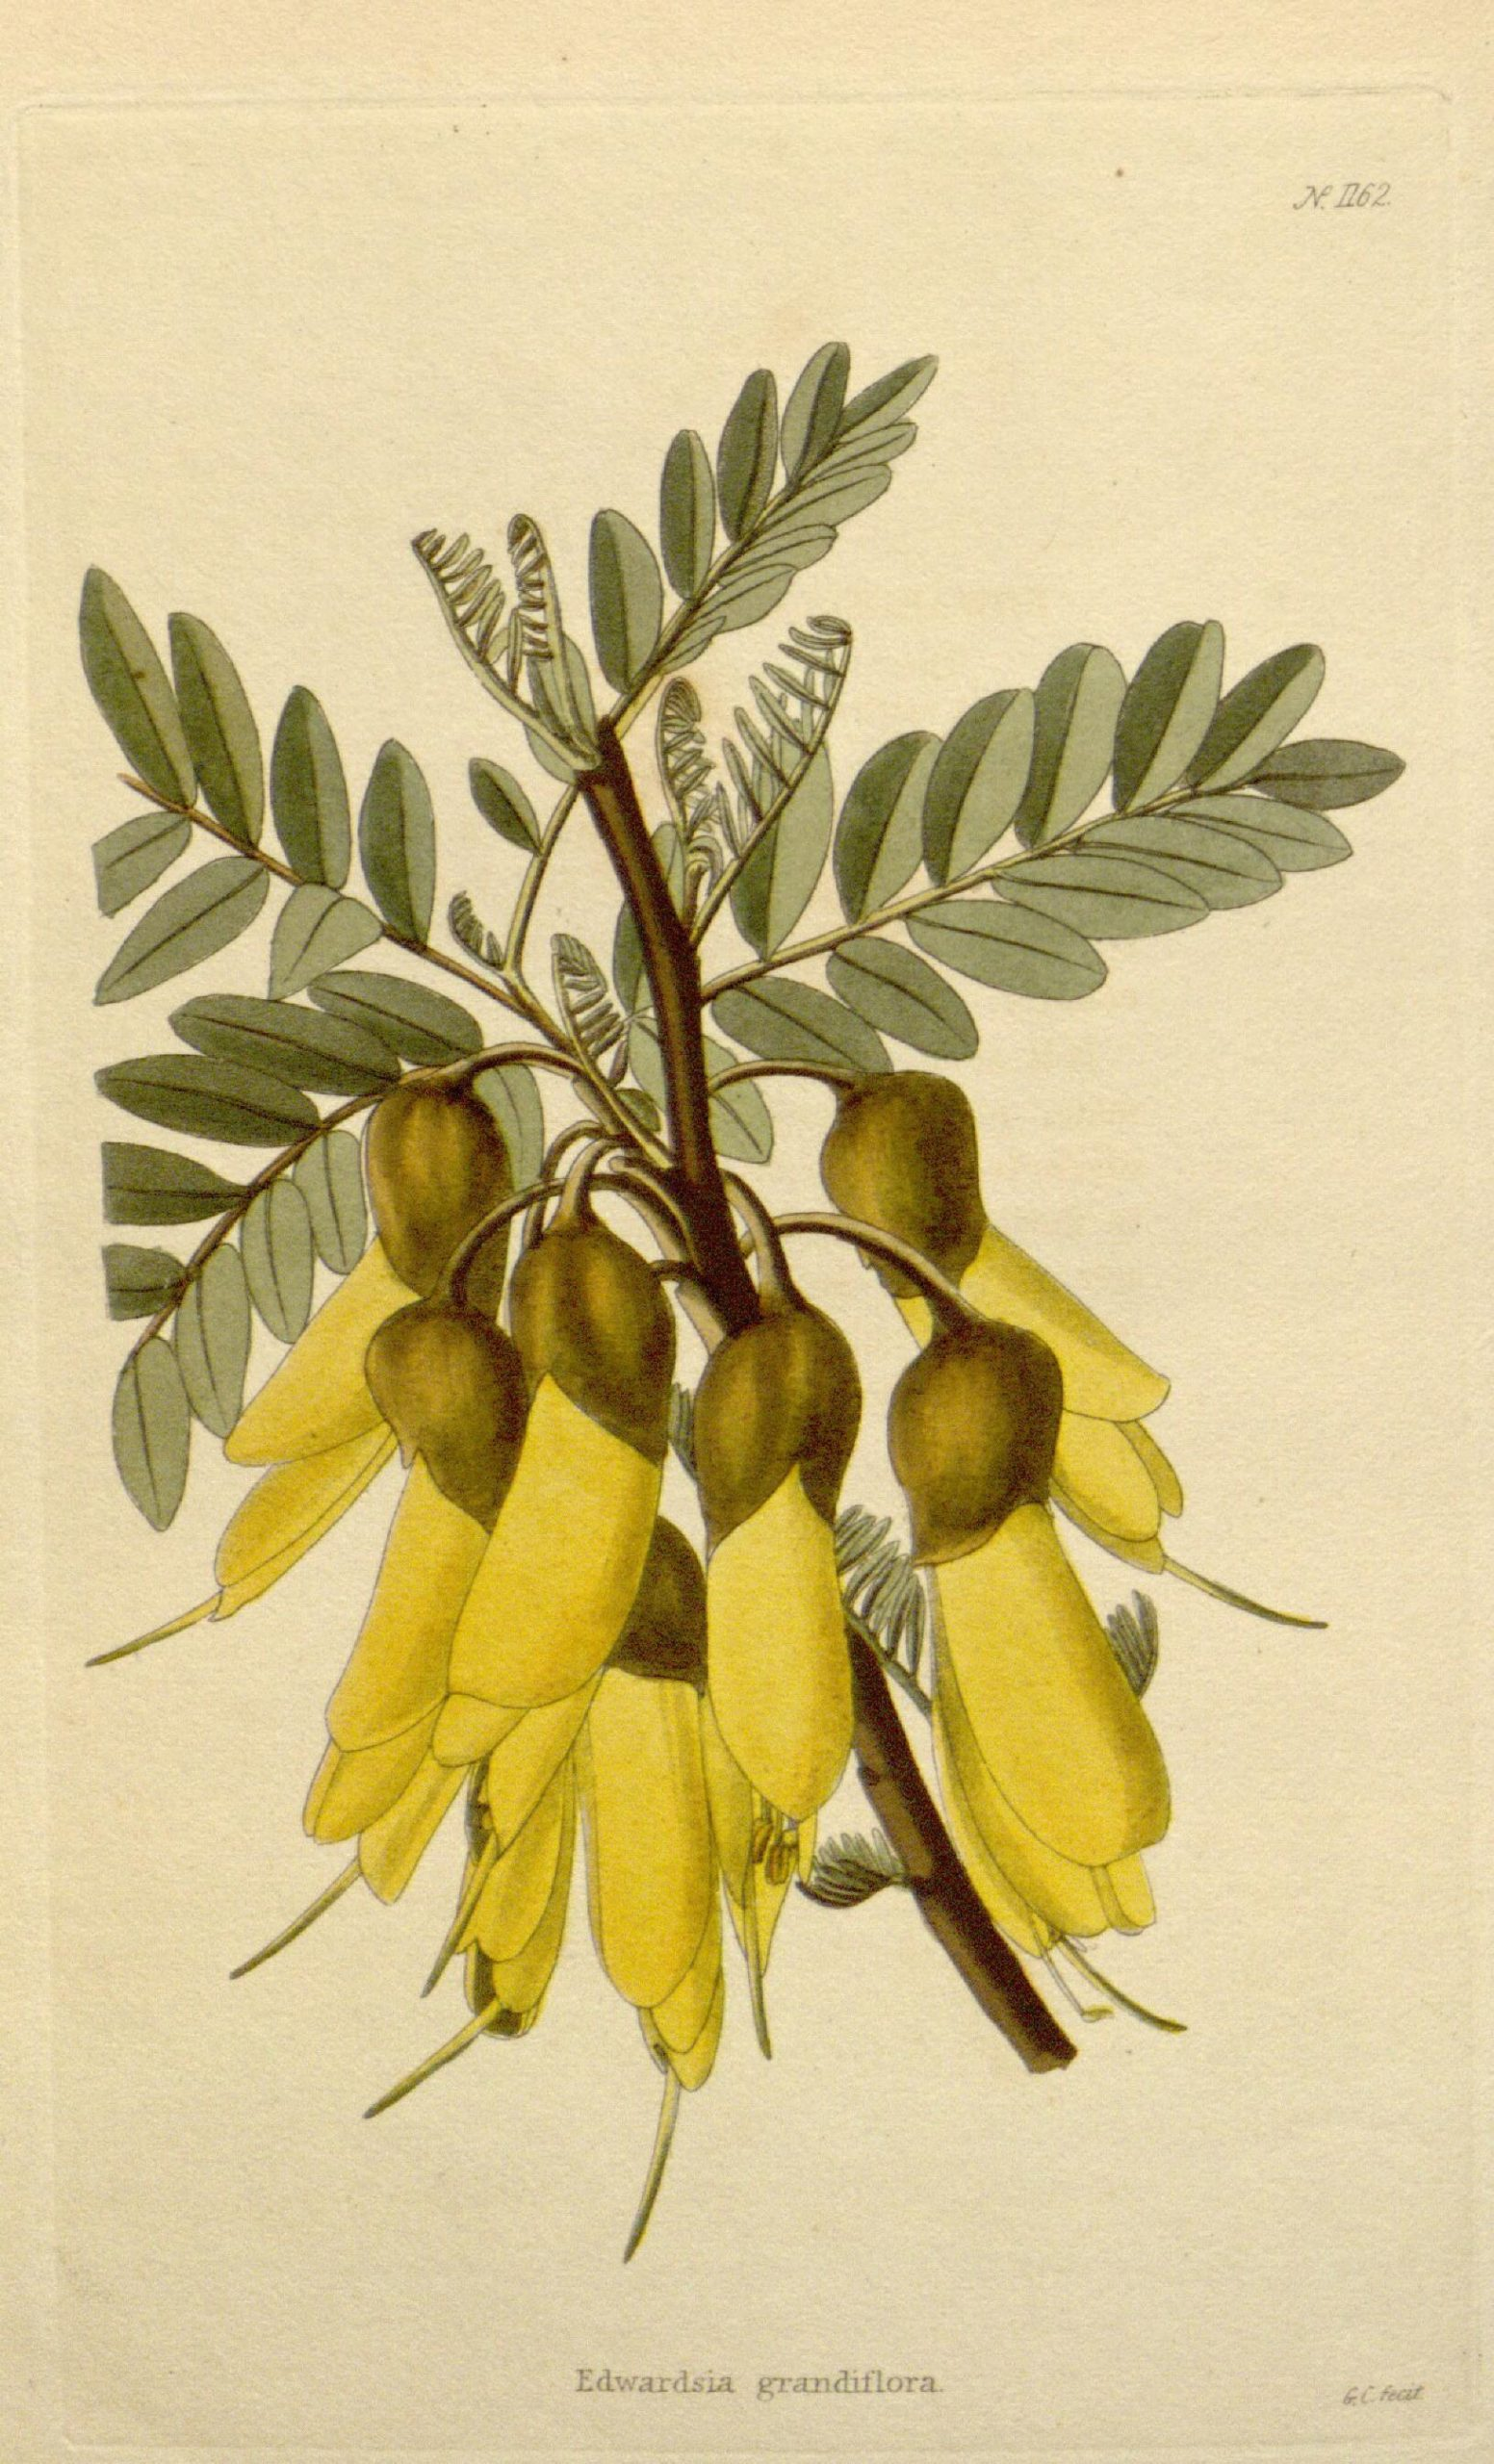 A branch with yellow flowers, Sophora tetraptera, and green leaves